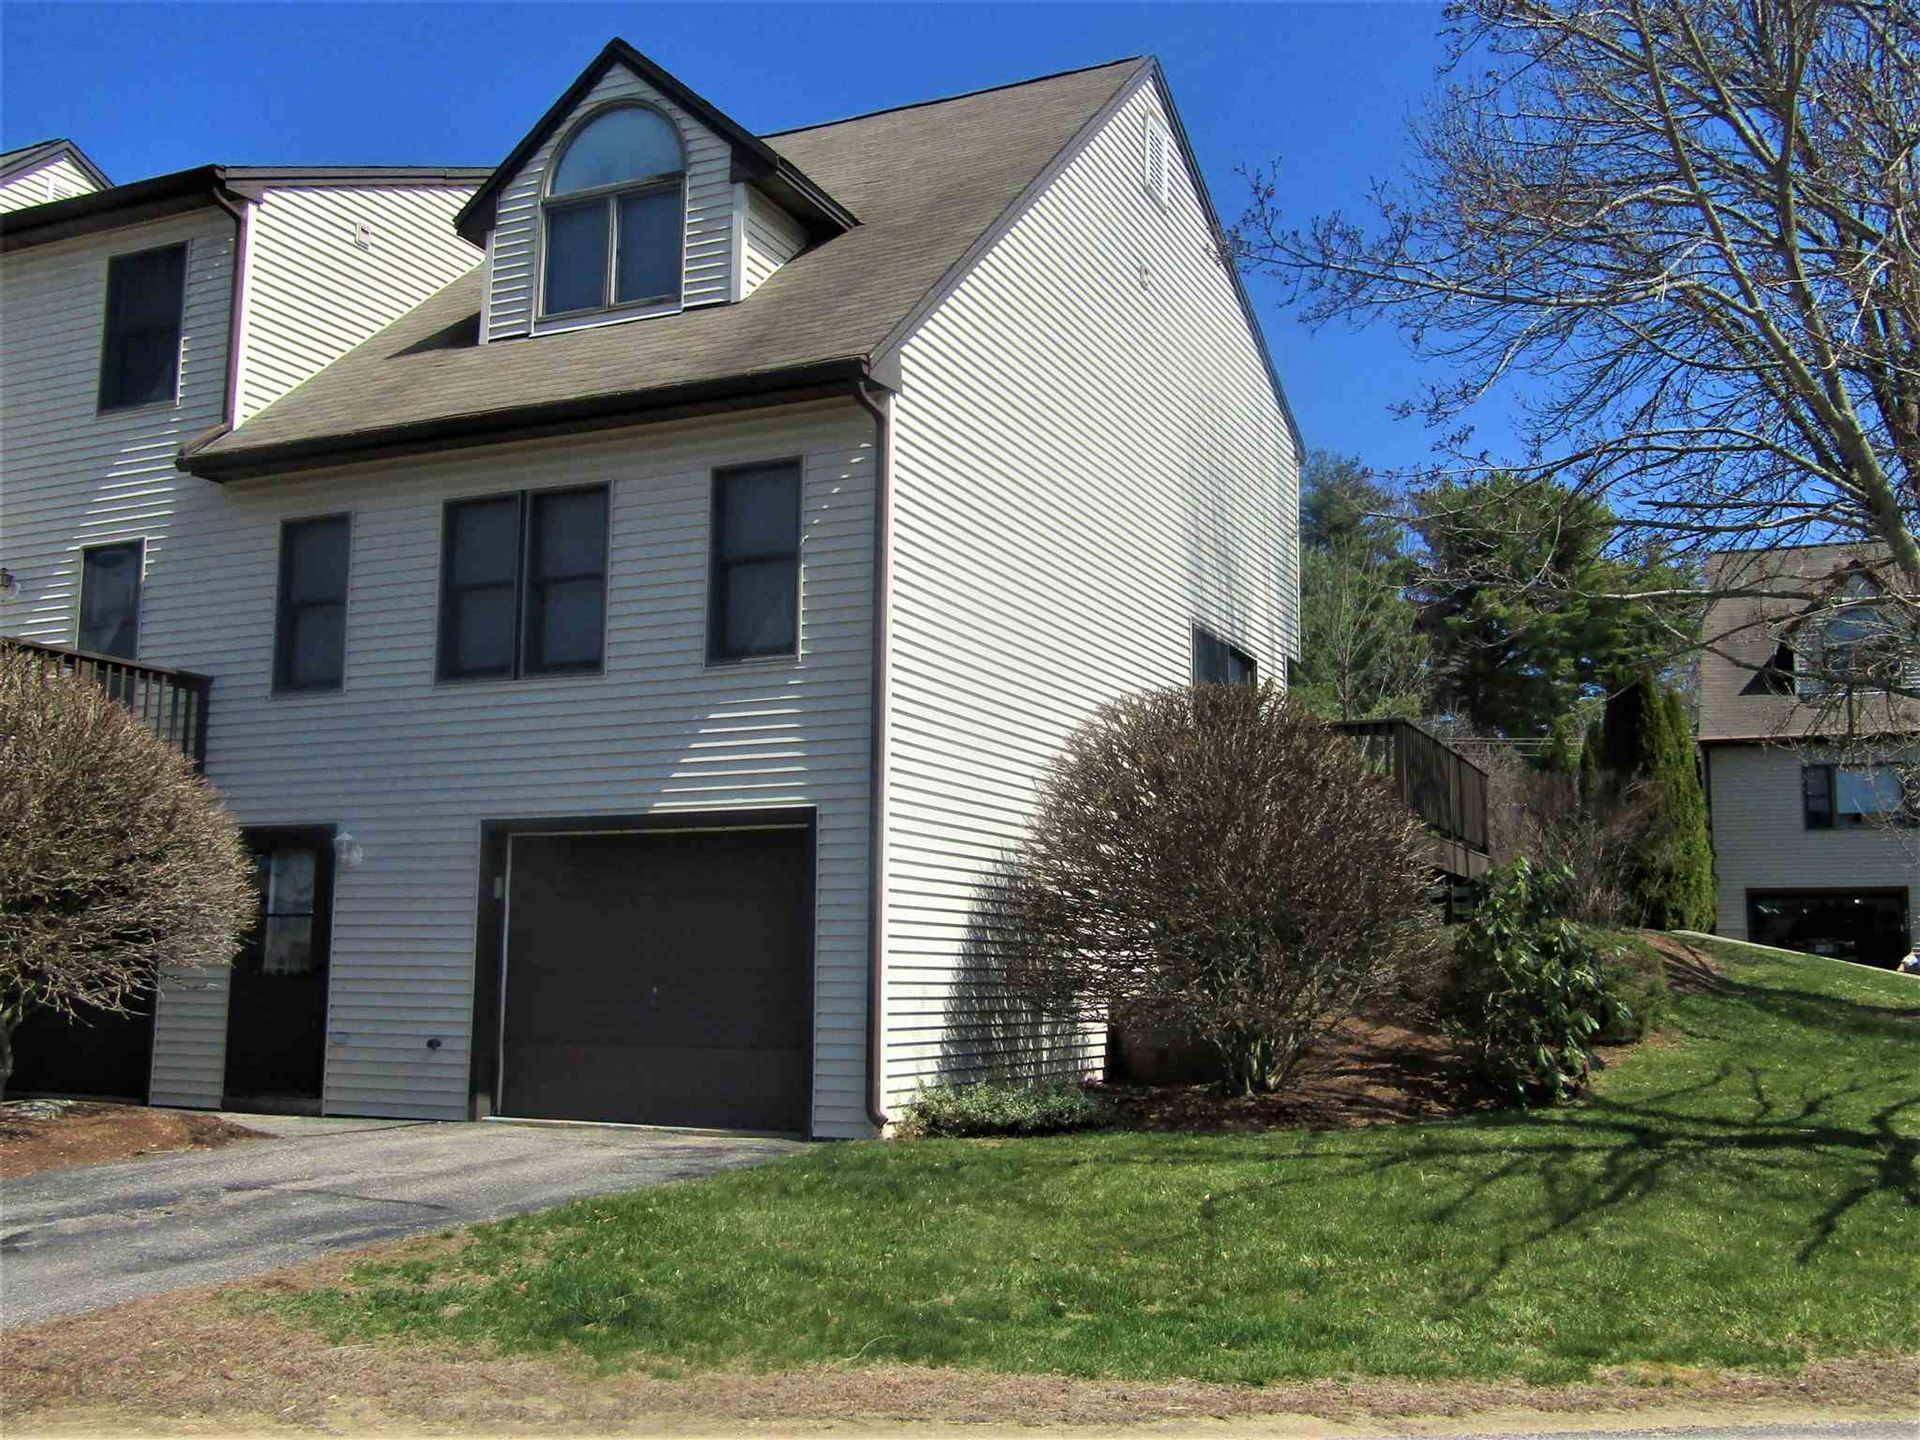 416 Ledgeview Drive, Rochester, NH 03839 - MLS#: 4855534